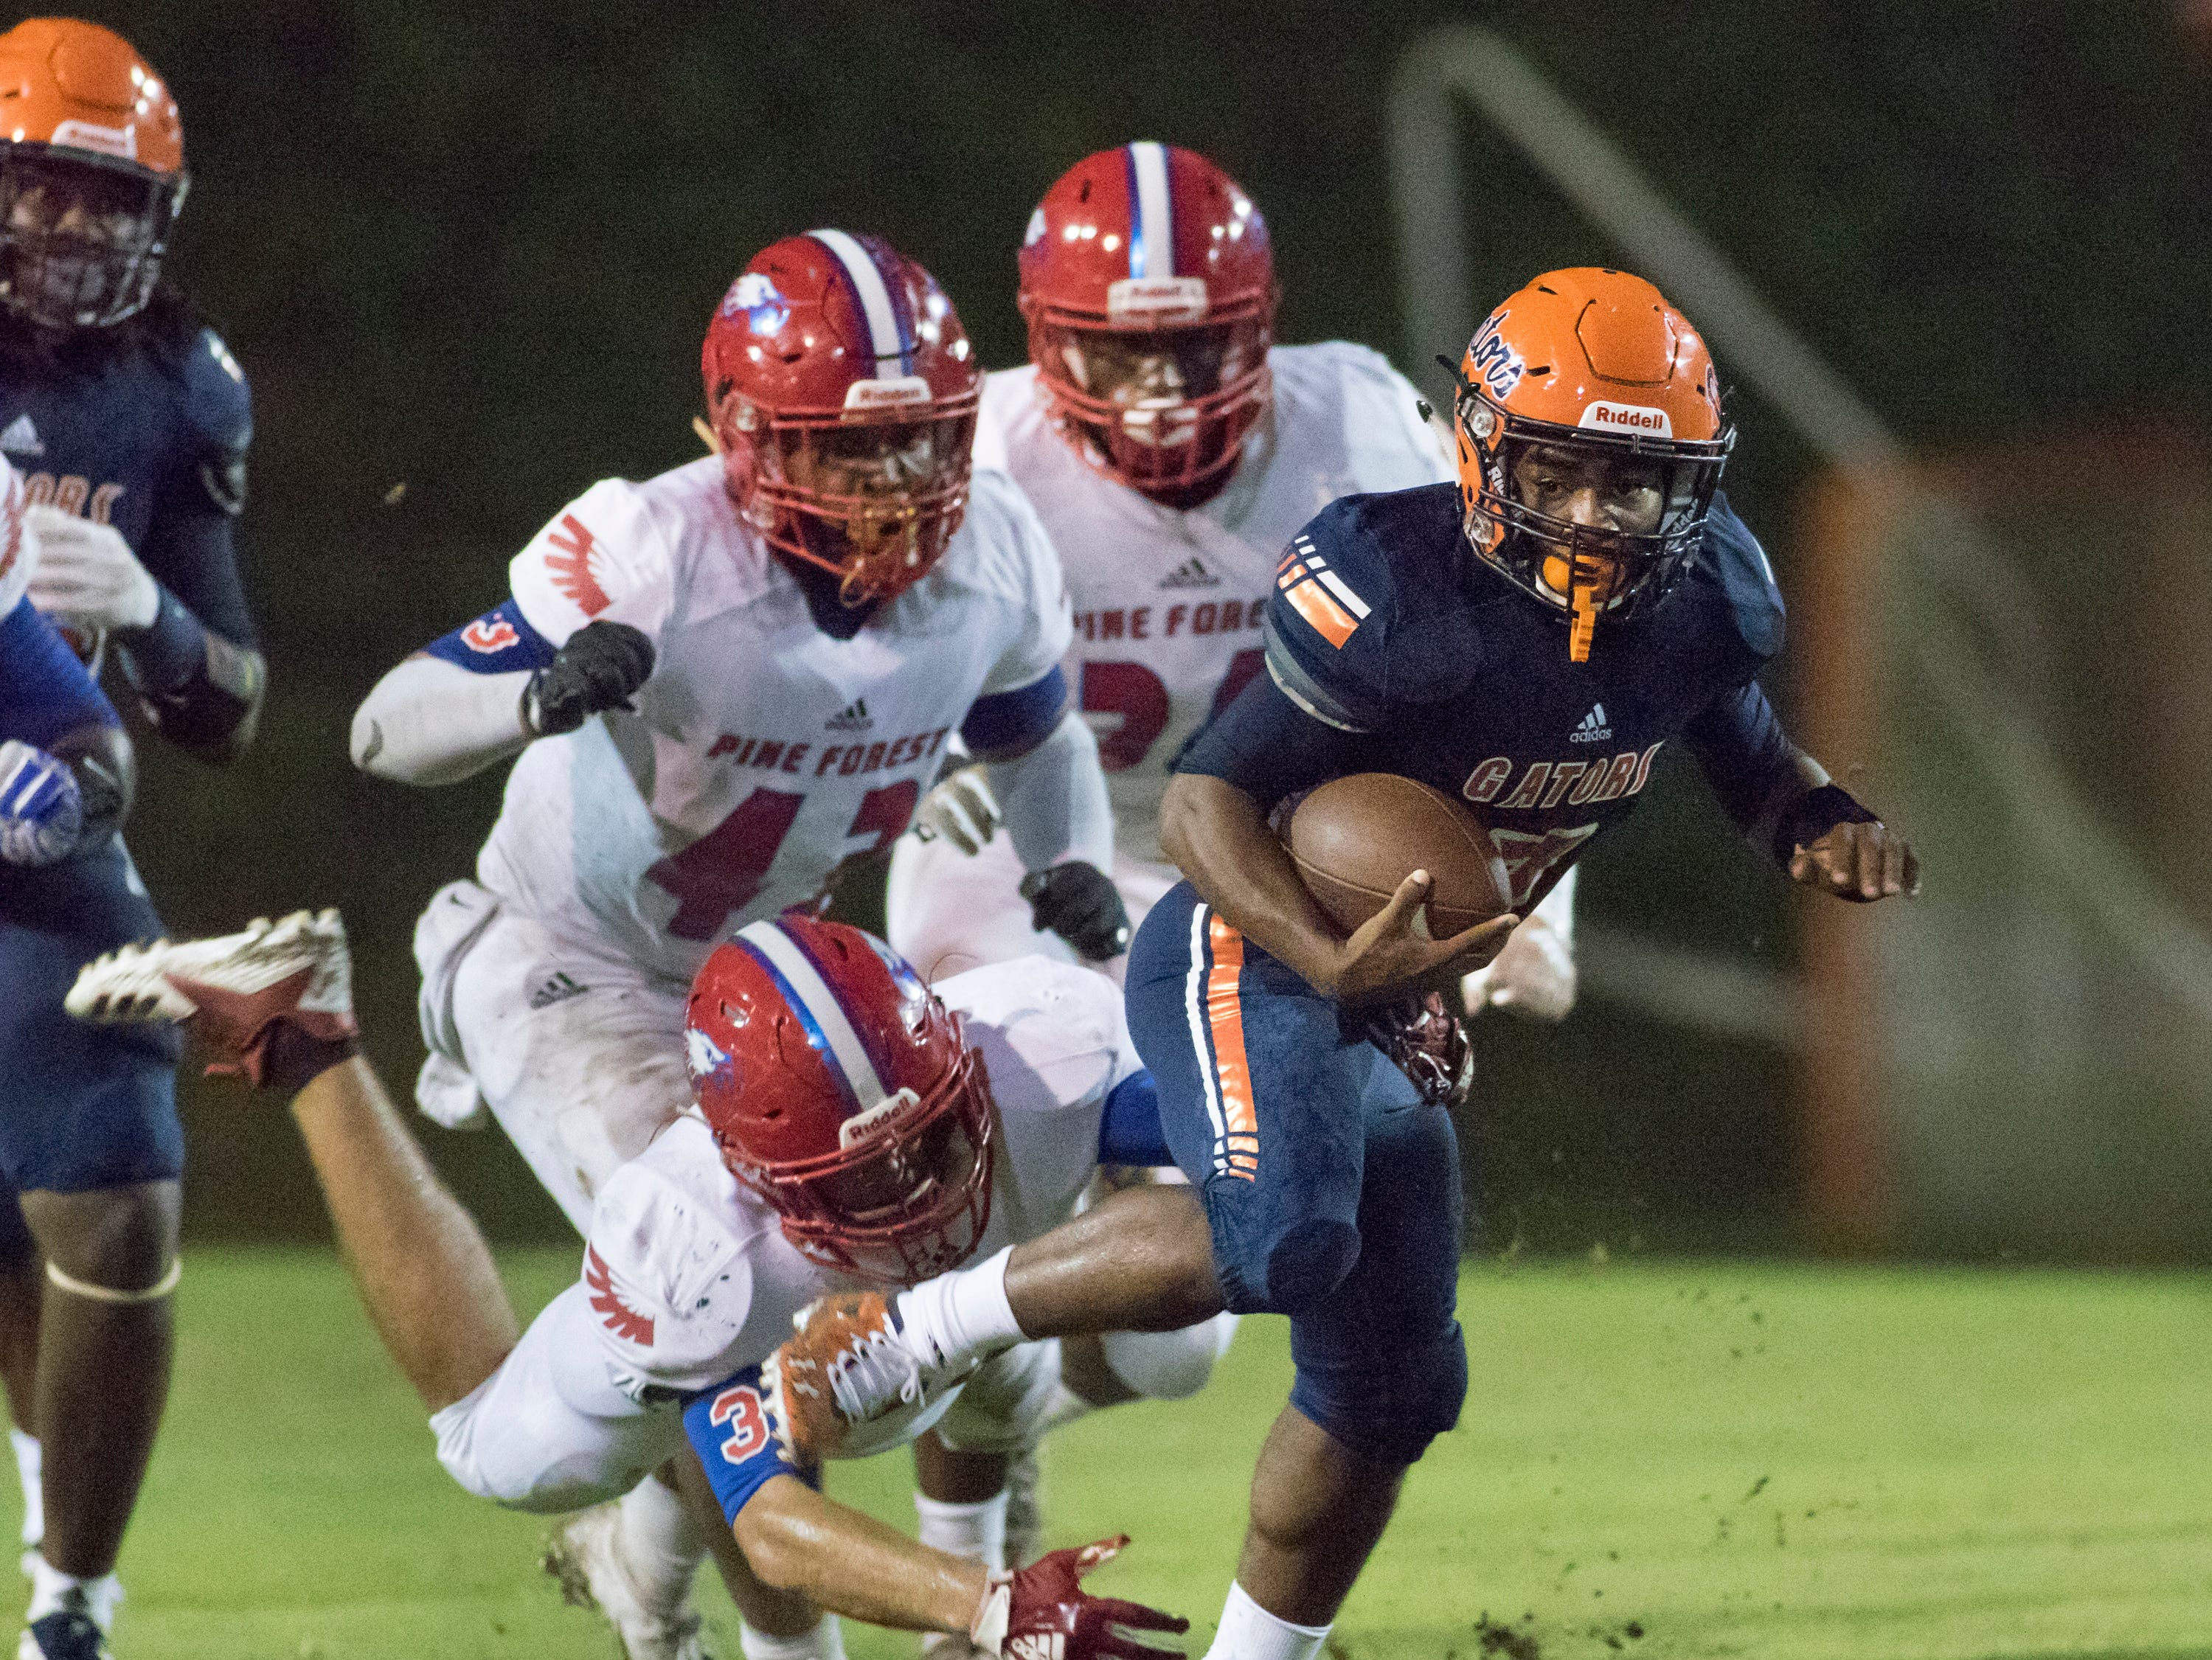 Kyaire Hall (7) slips a tackle for a big pick up during the Pine Forest vs Escambia football game at Escambia High School in Pensacola on Friday, September 28, 2018.